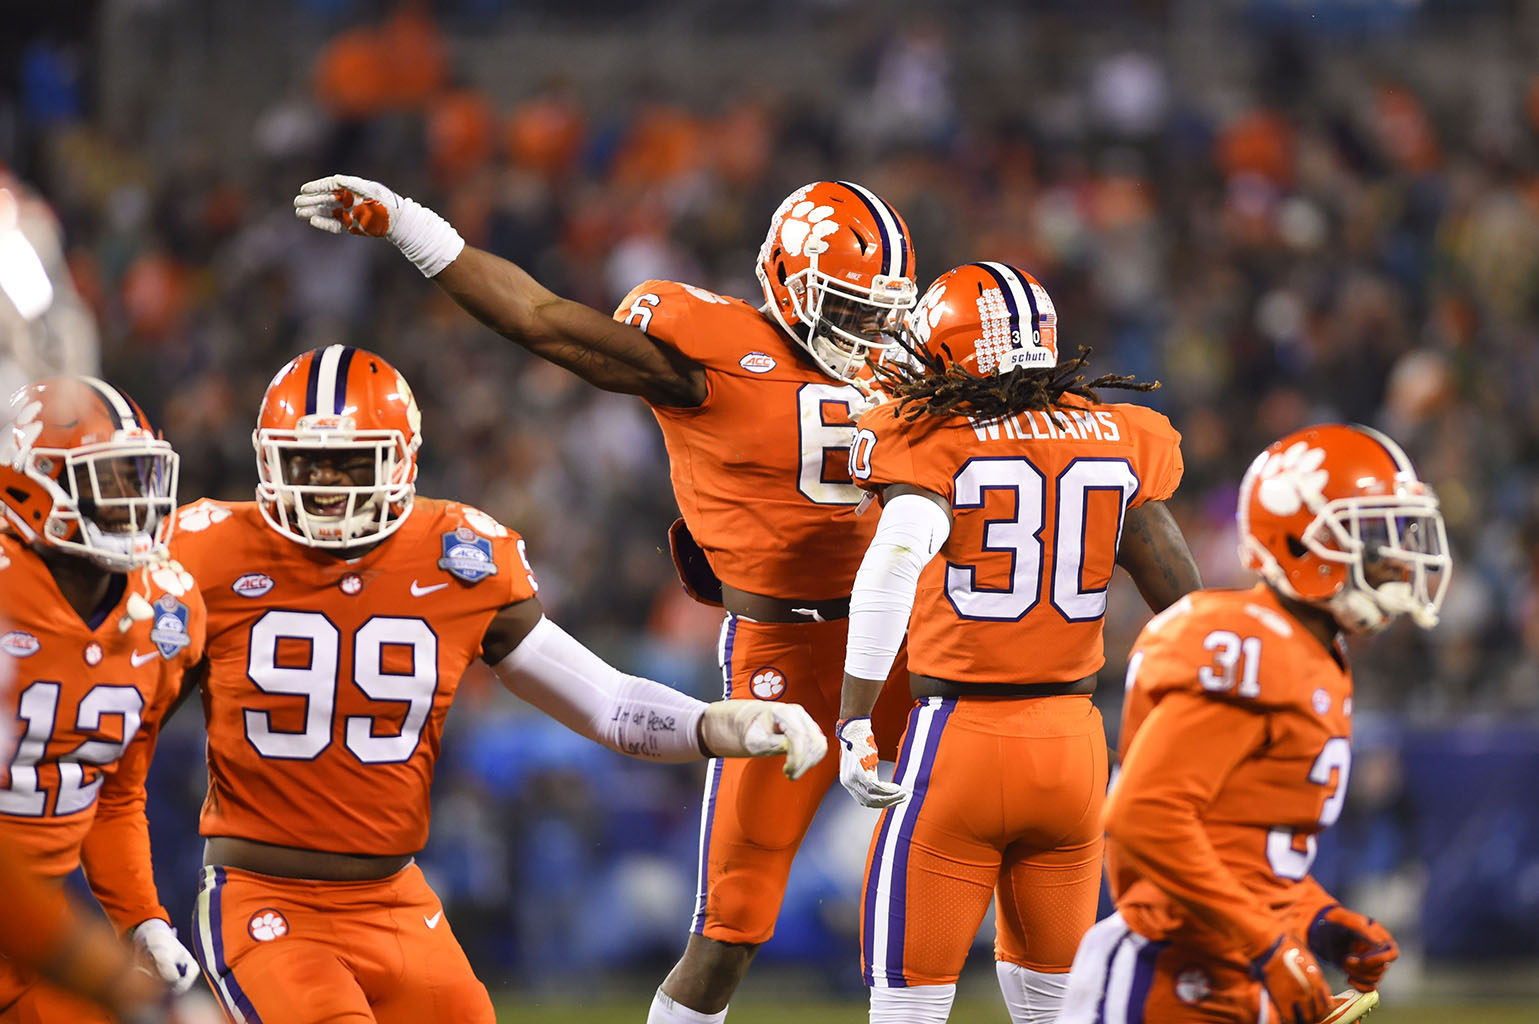 Clemson S Uniform Combinations Were Wasted Energy The Clemson Insider